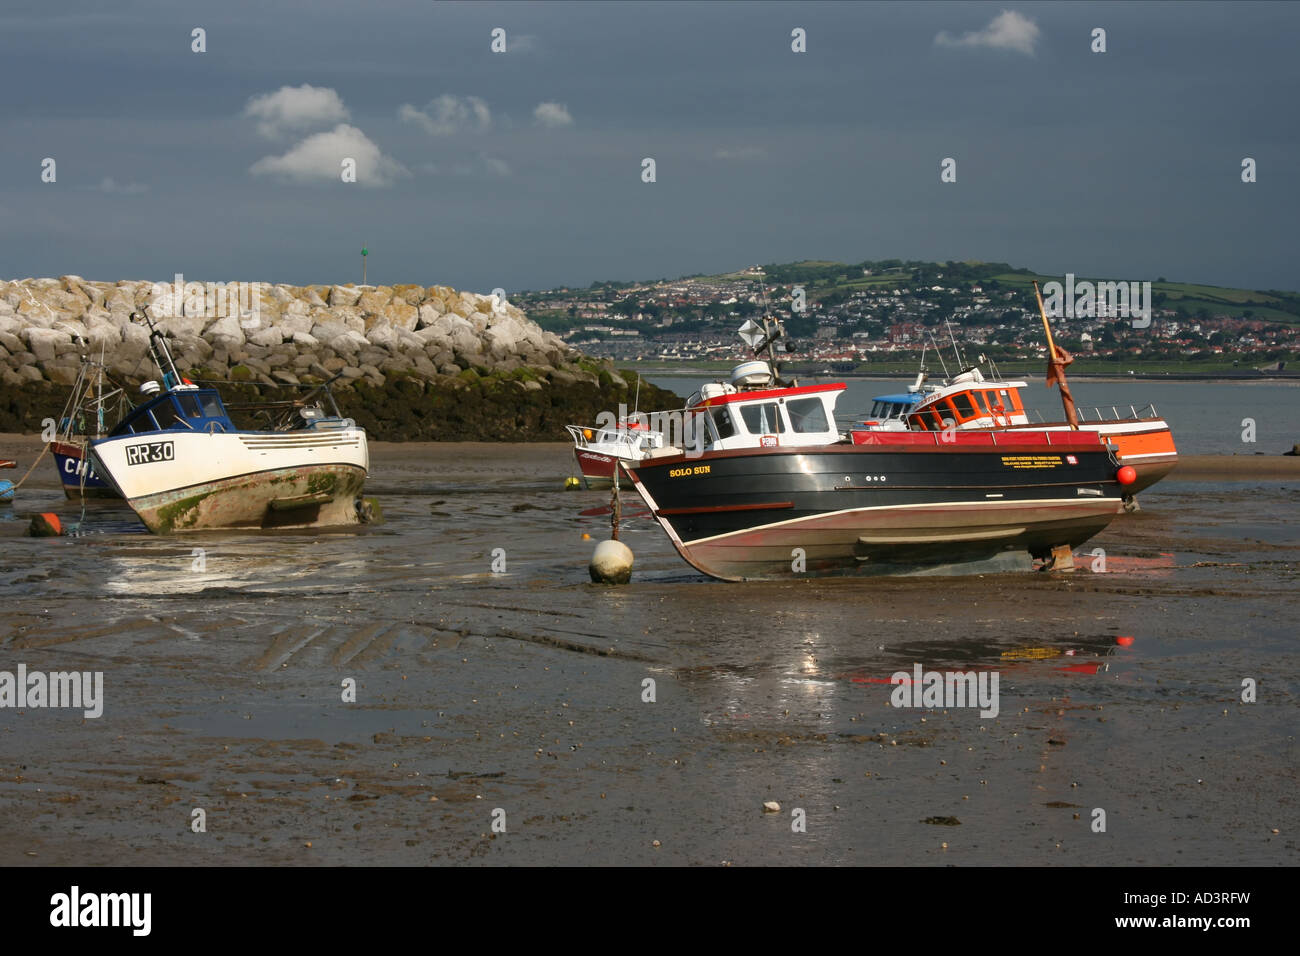 Small boats on beach at low tide at Rhos-on-Sea harbour, North Wales - Stock Image